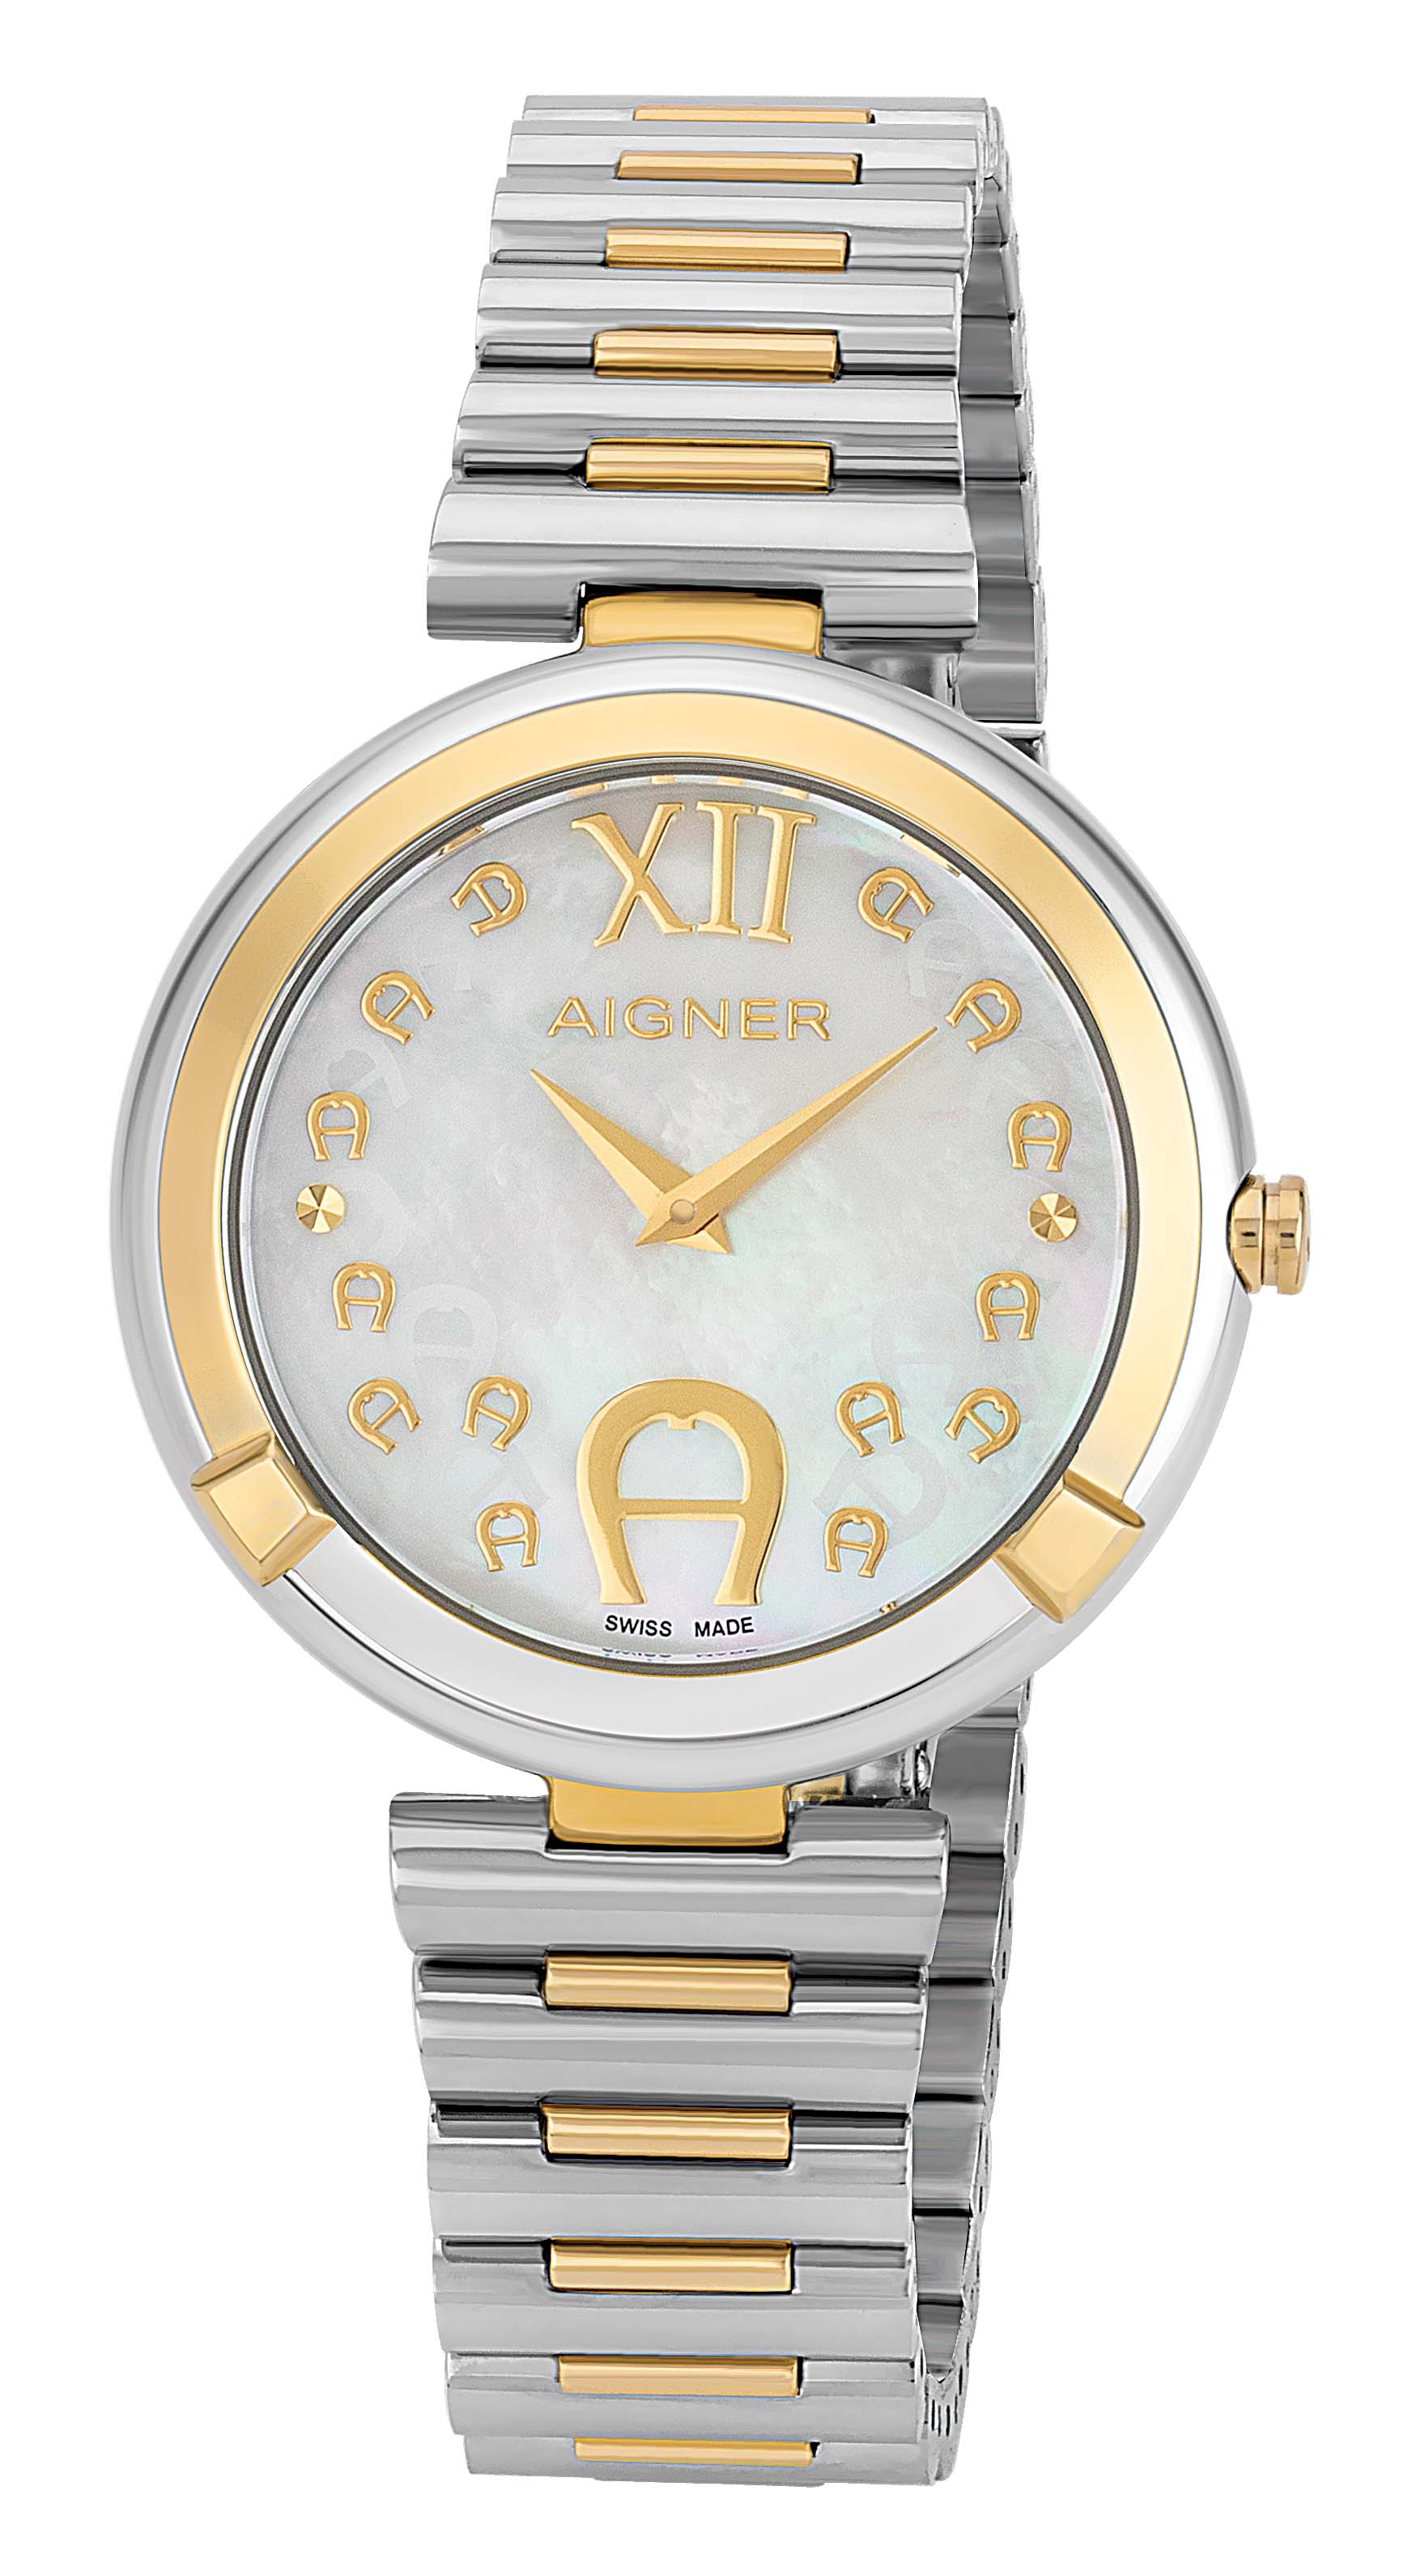 AIGNER FASHION WATCH - GORIZIA